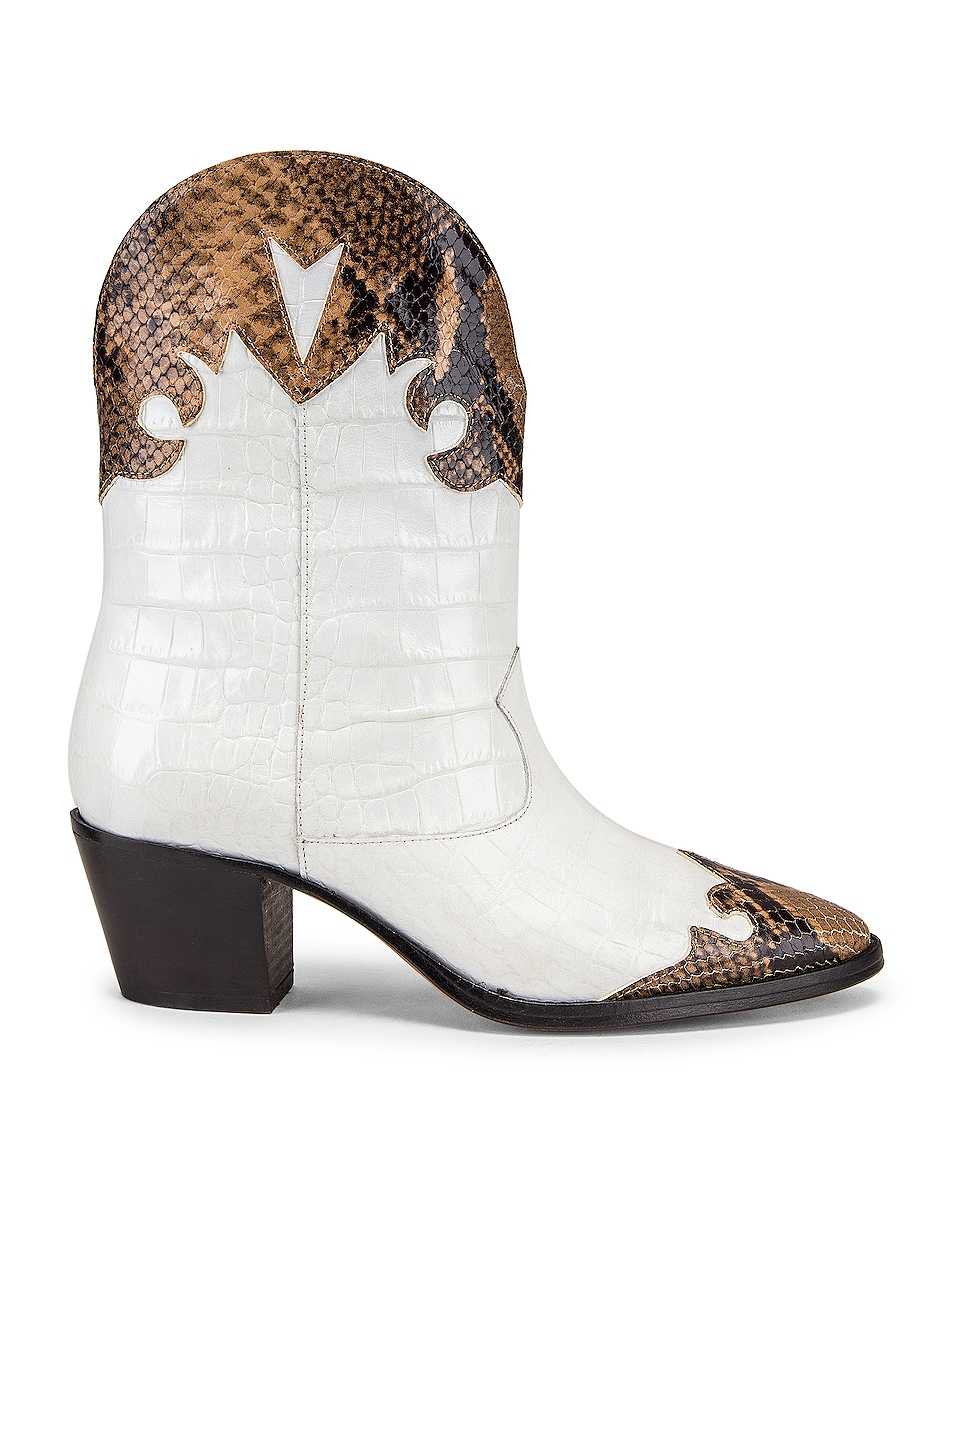 Image 1 of Paris Texas Python Moc Coco Texano Boot in Camel & White